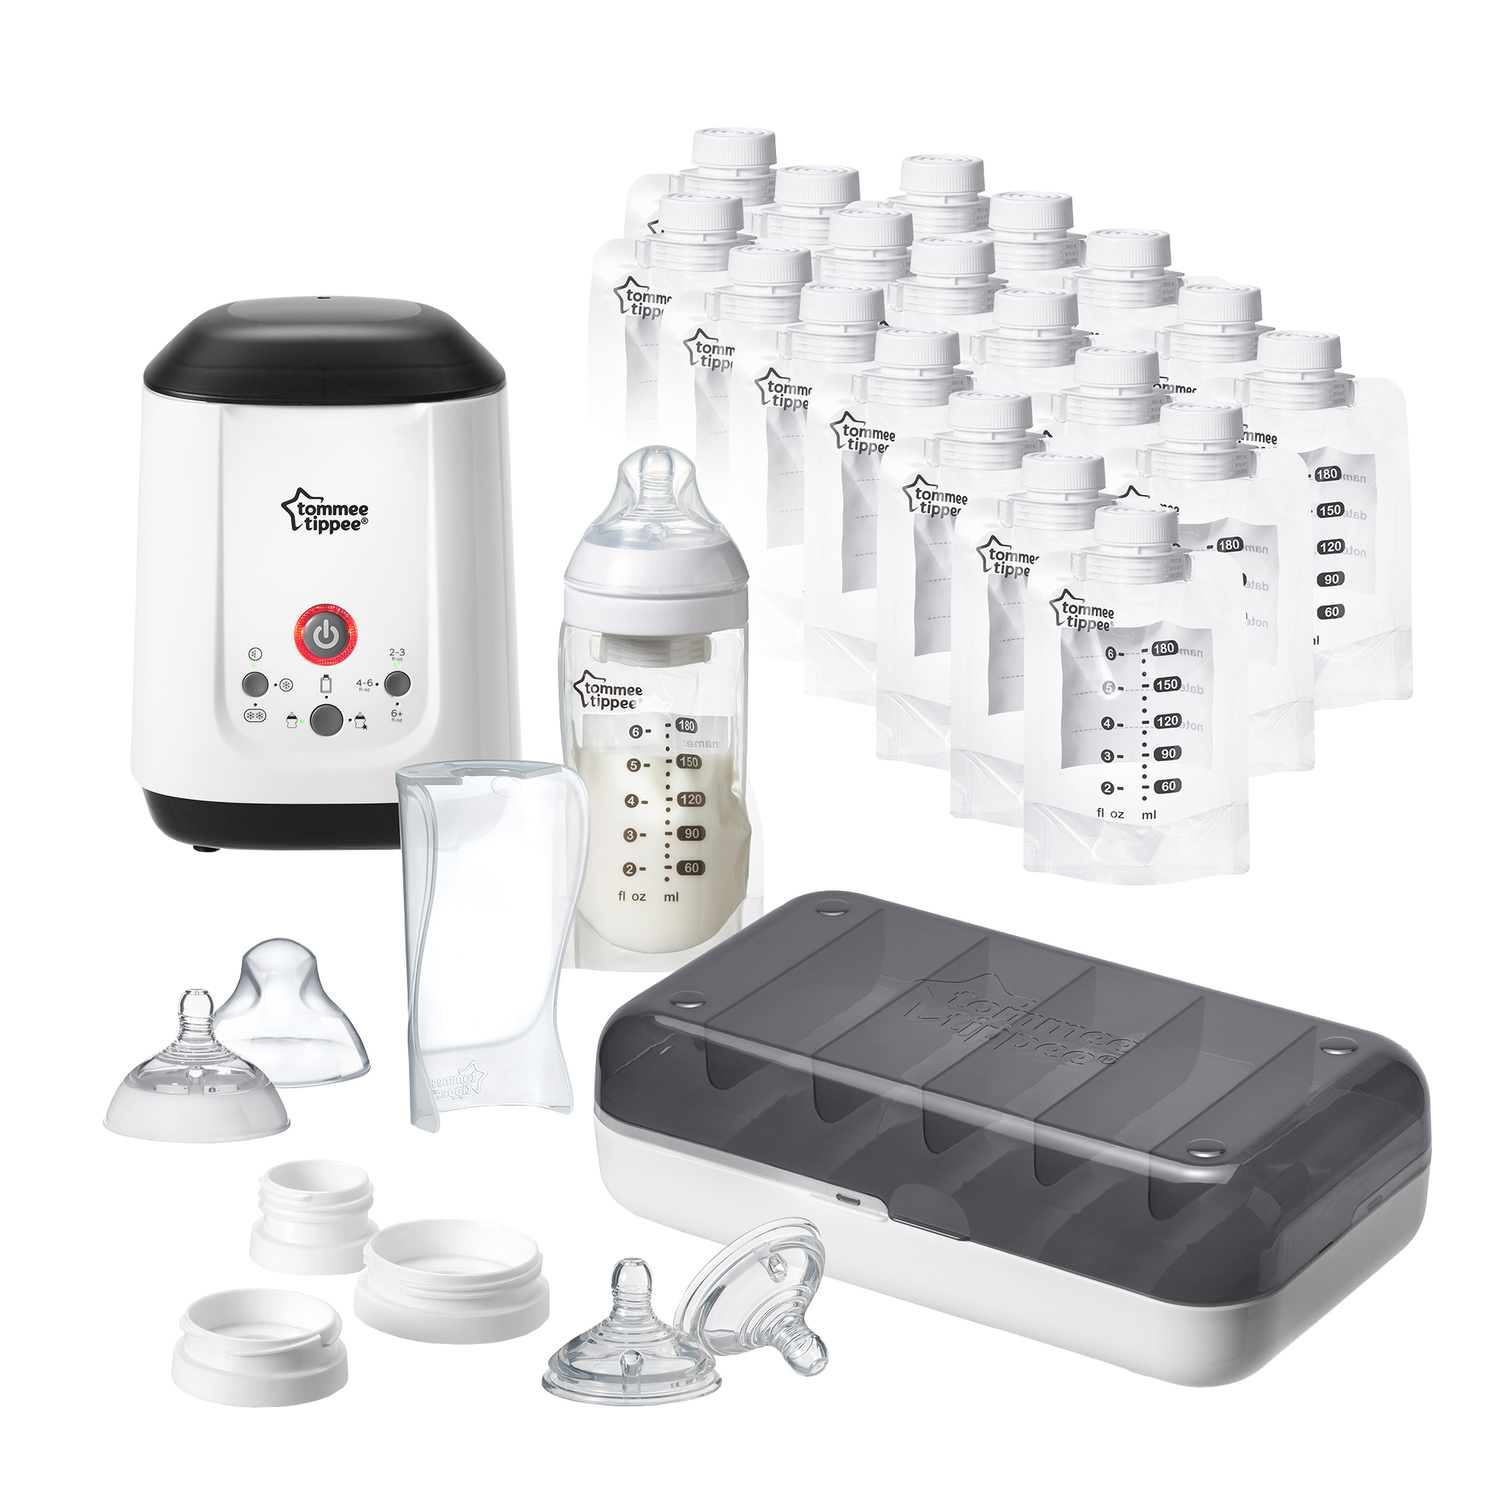 Tommee Tippee Pump and Go Starter Set, 28 pieces